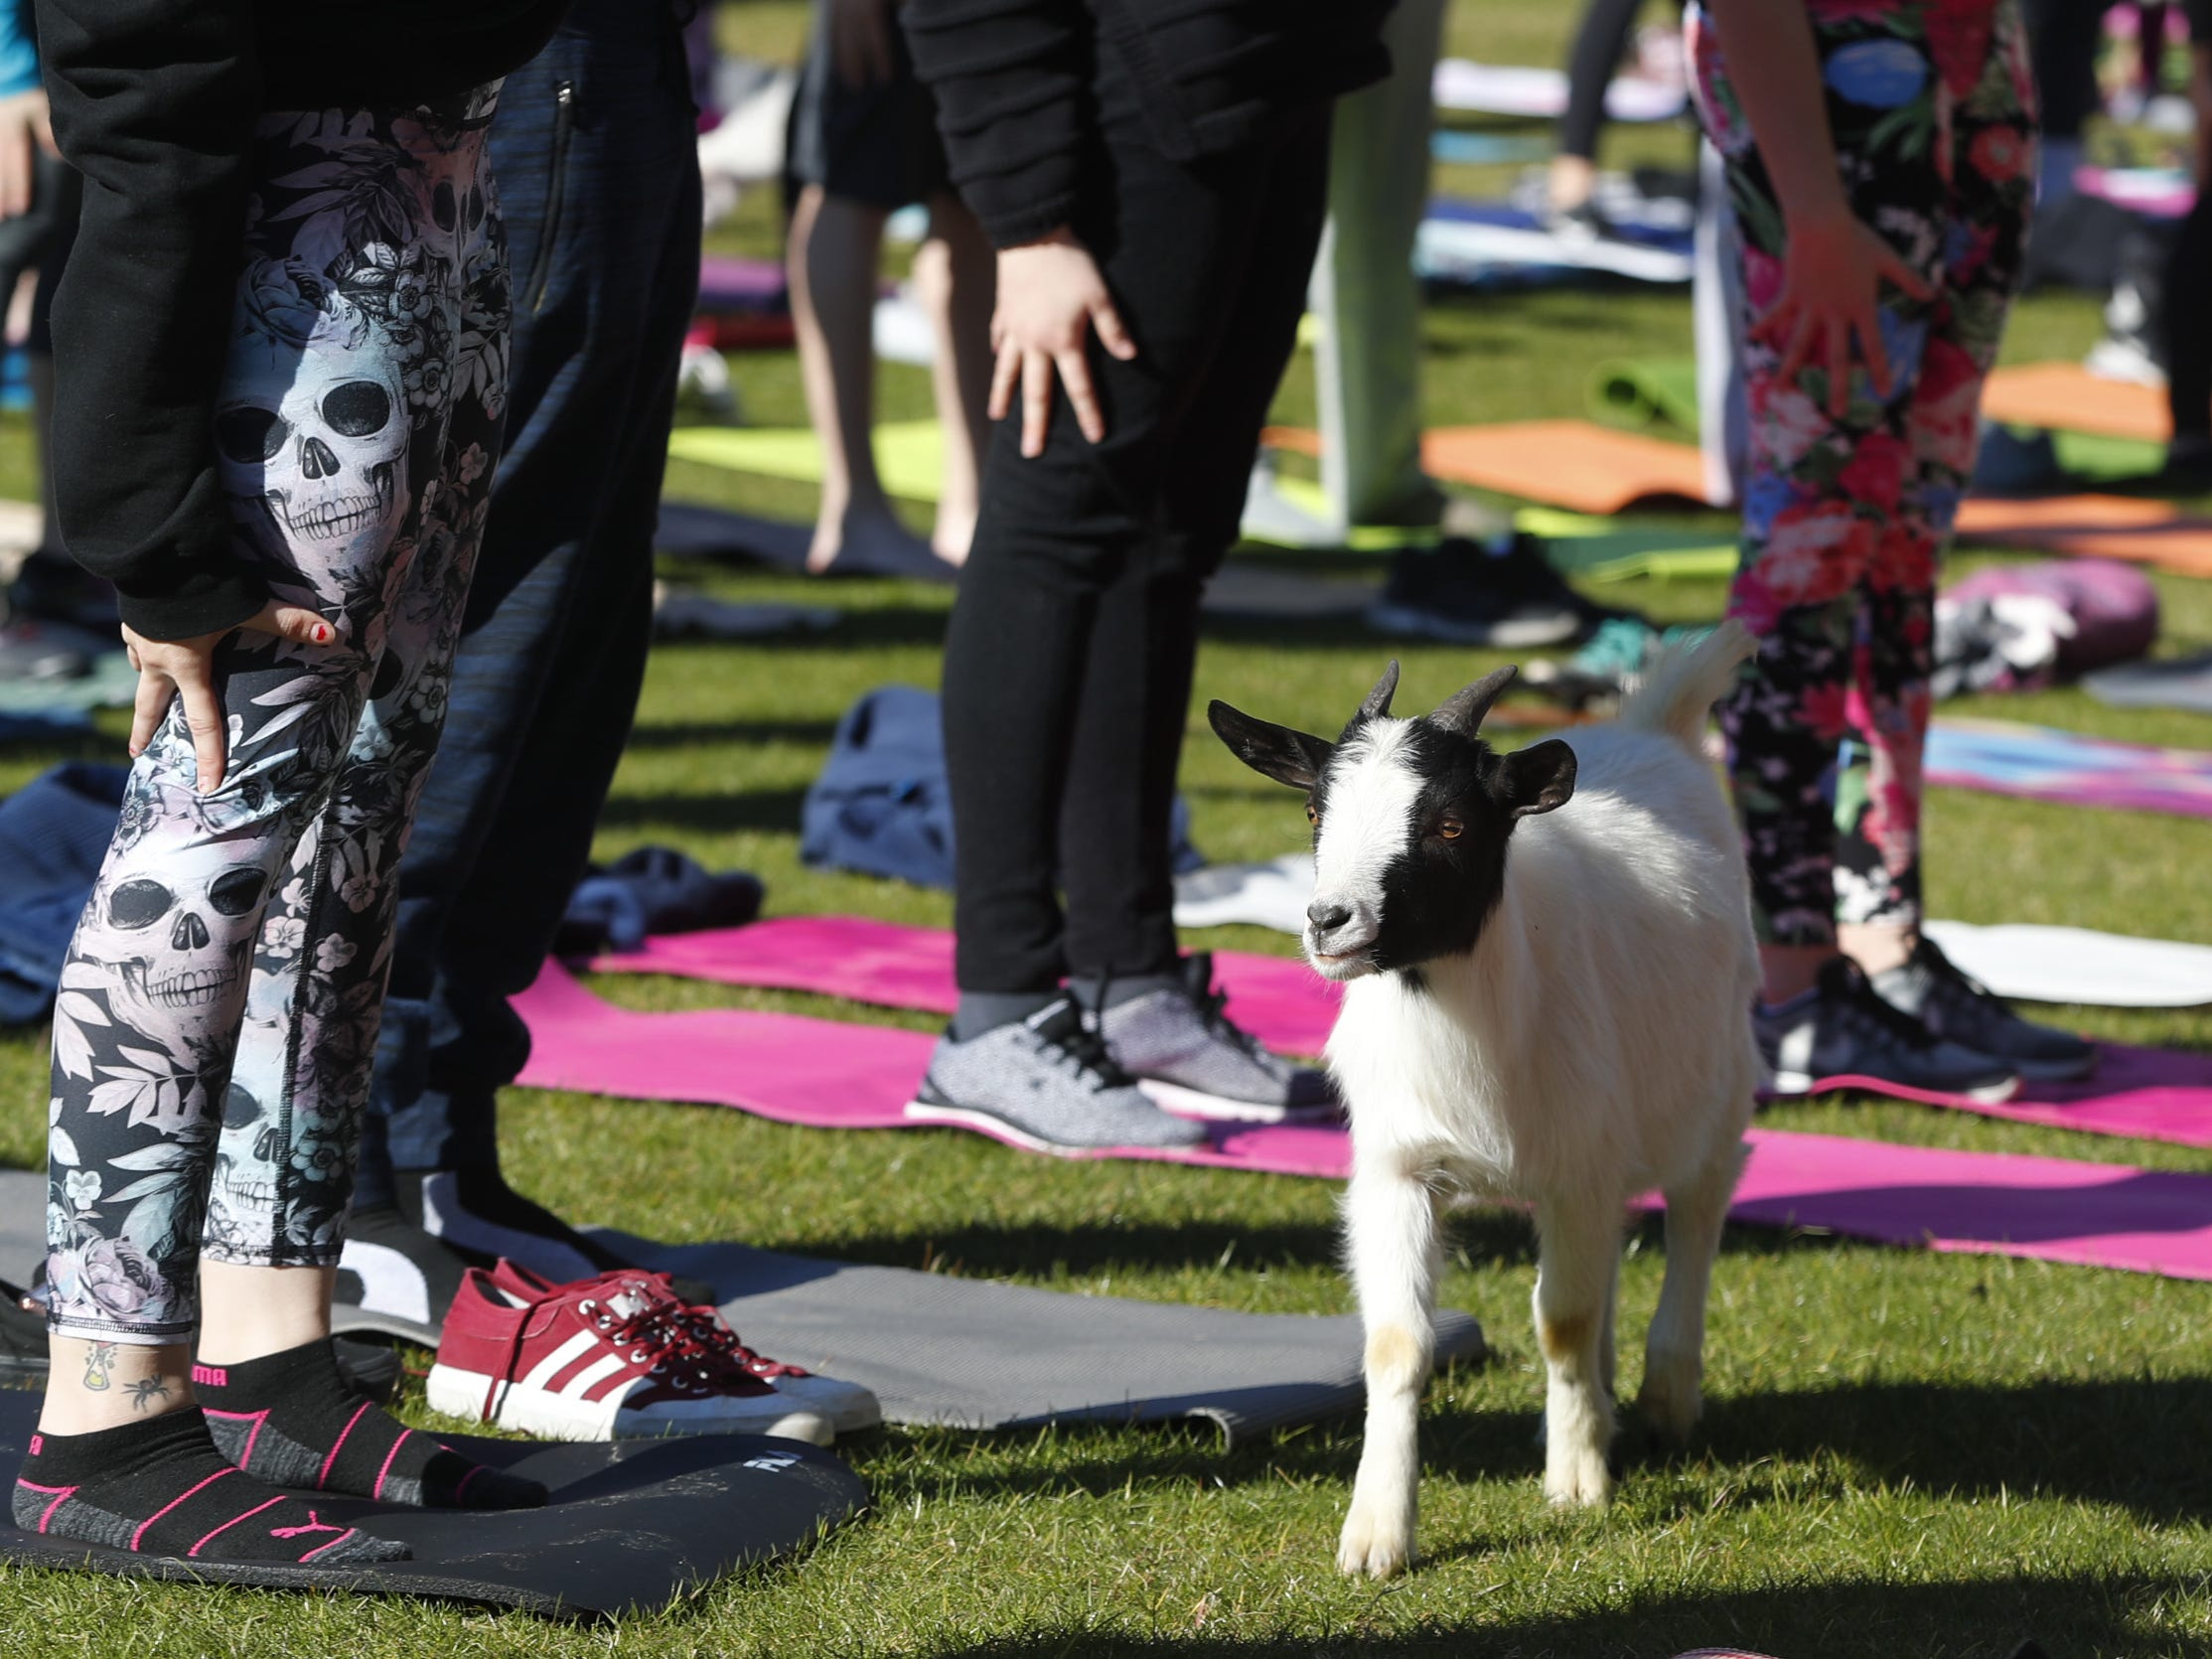 People perform yoga poses as goats make their way around during a Guinness World Record goat yoga attempt at the Mesa Amphitheatre in Mesa, Ariz. on Feb. 23, 2019.